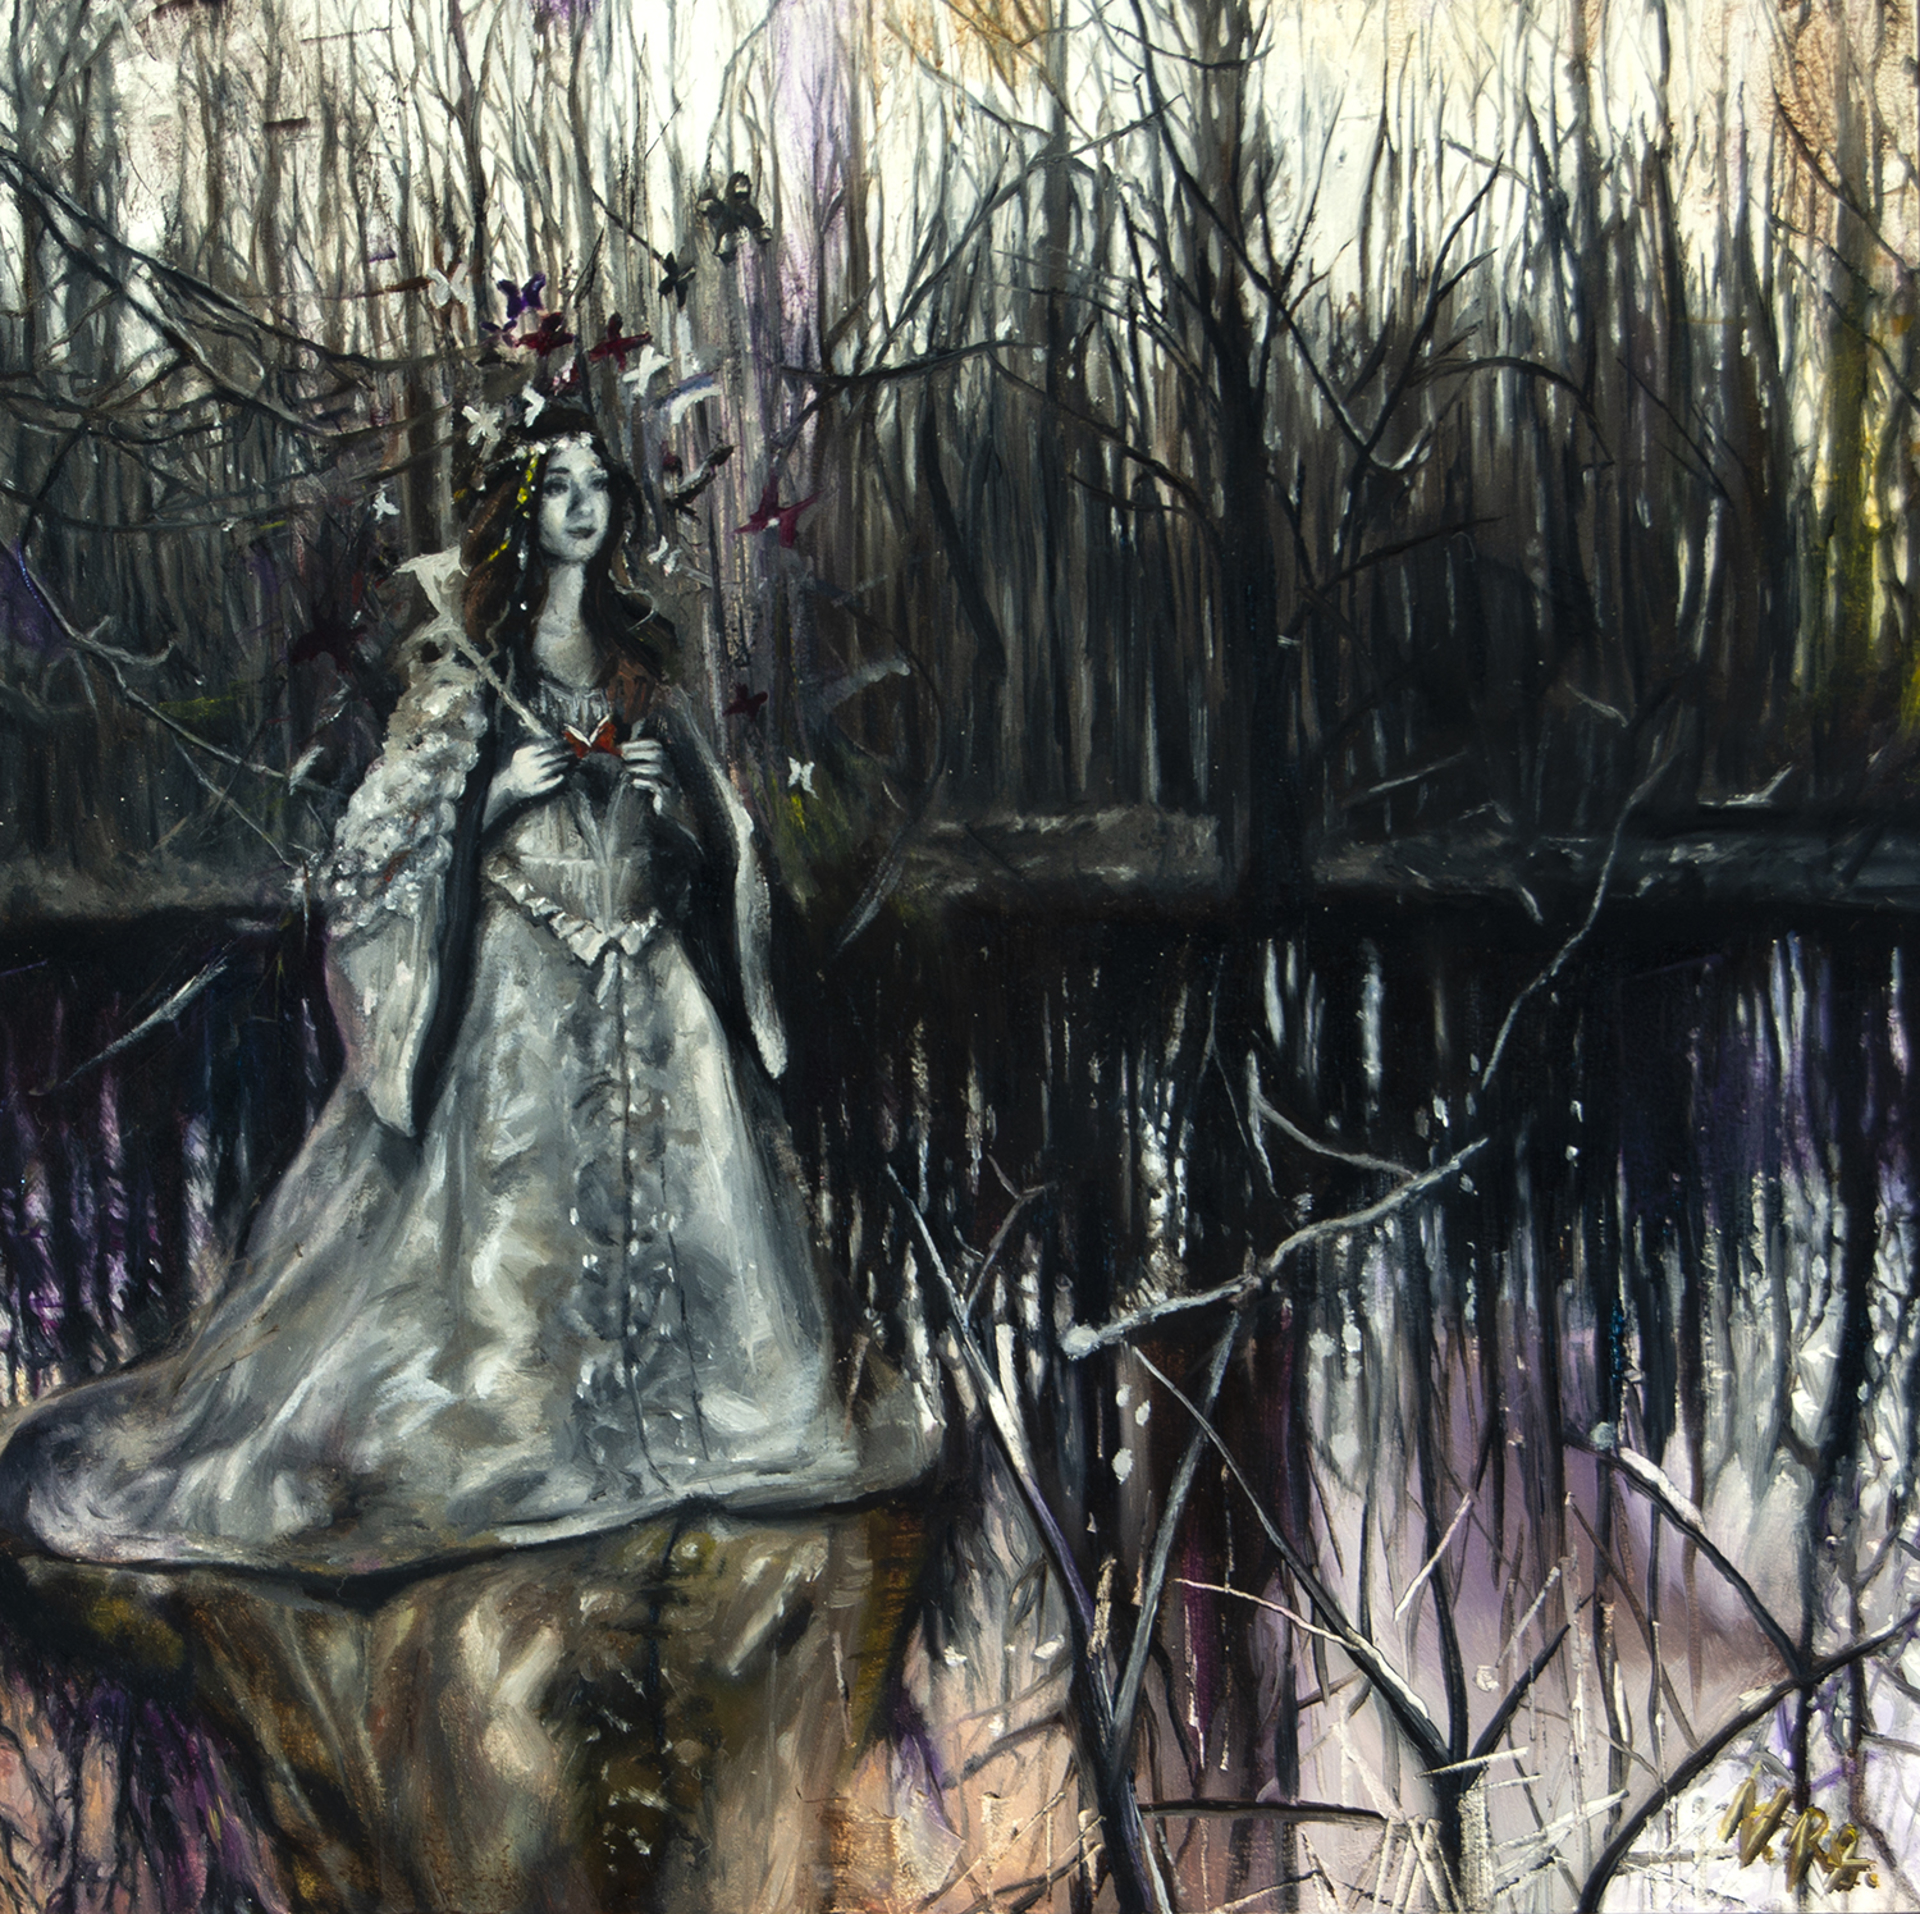 Reflections of Persephone by Victoria Steel